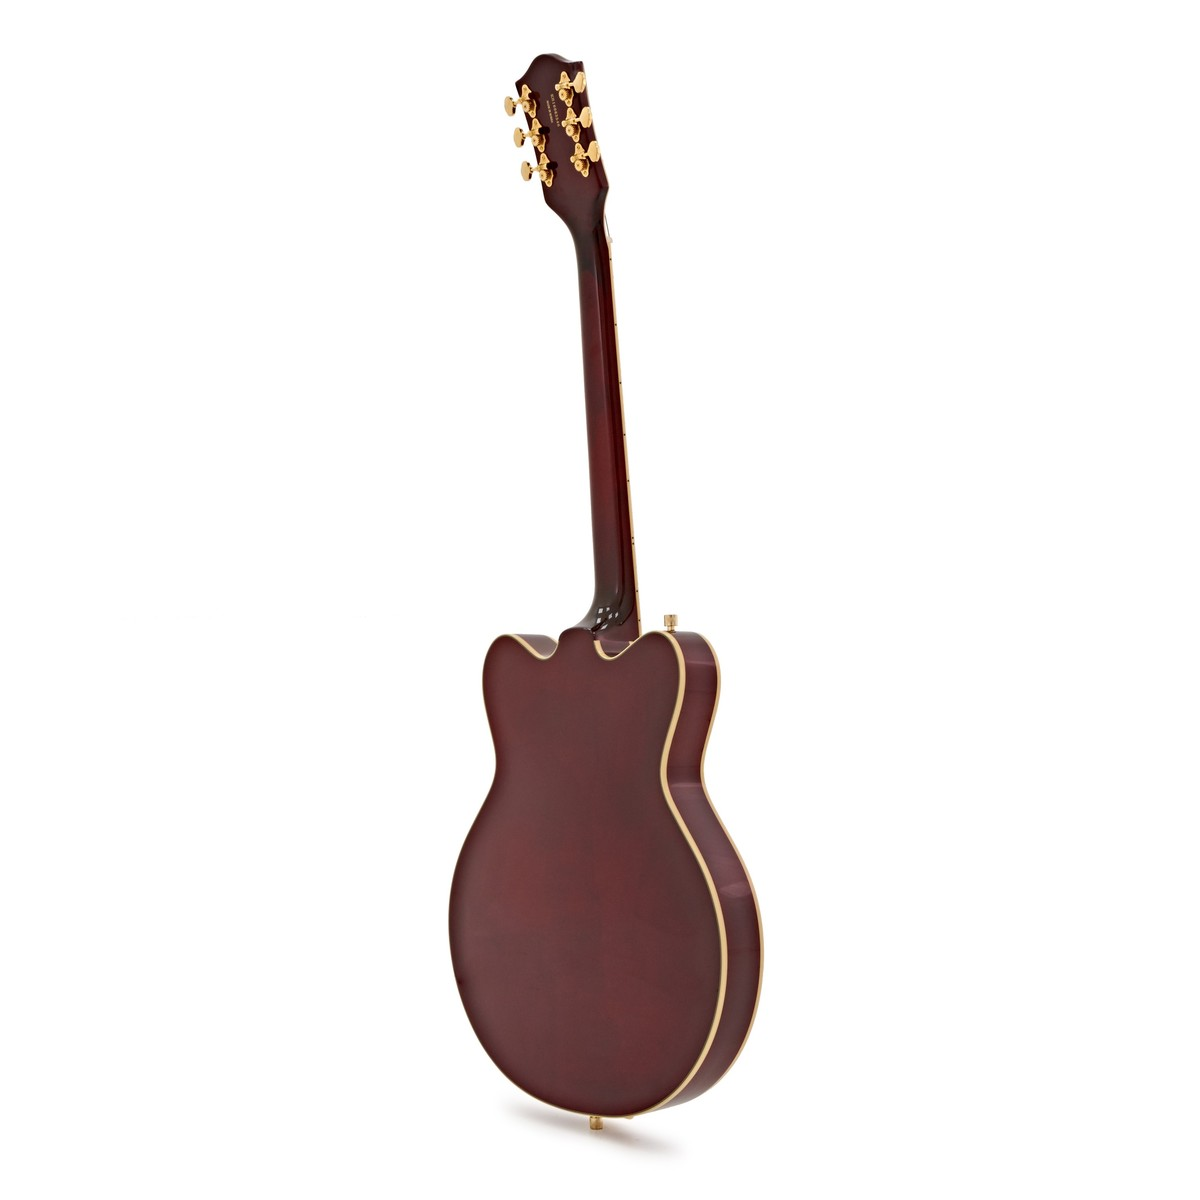 gretsch g5422tg electromatic hollow body guitar walnut stain at gear4music. Black Bedroom Furniture Sets. Home Design Ideas